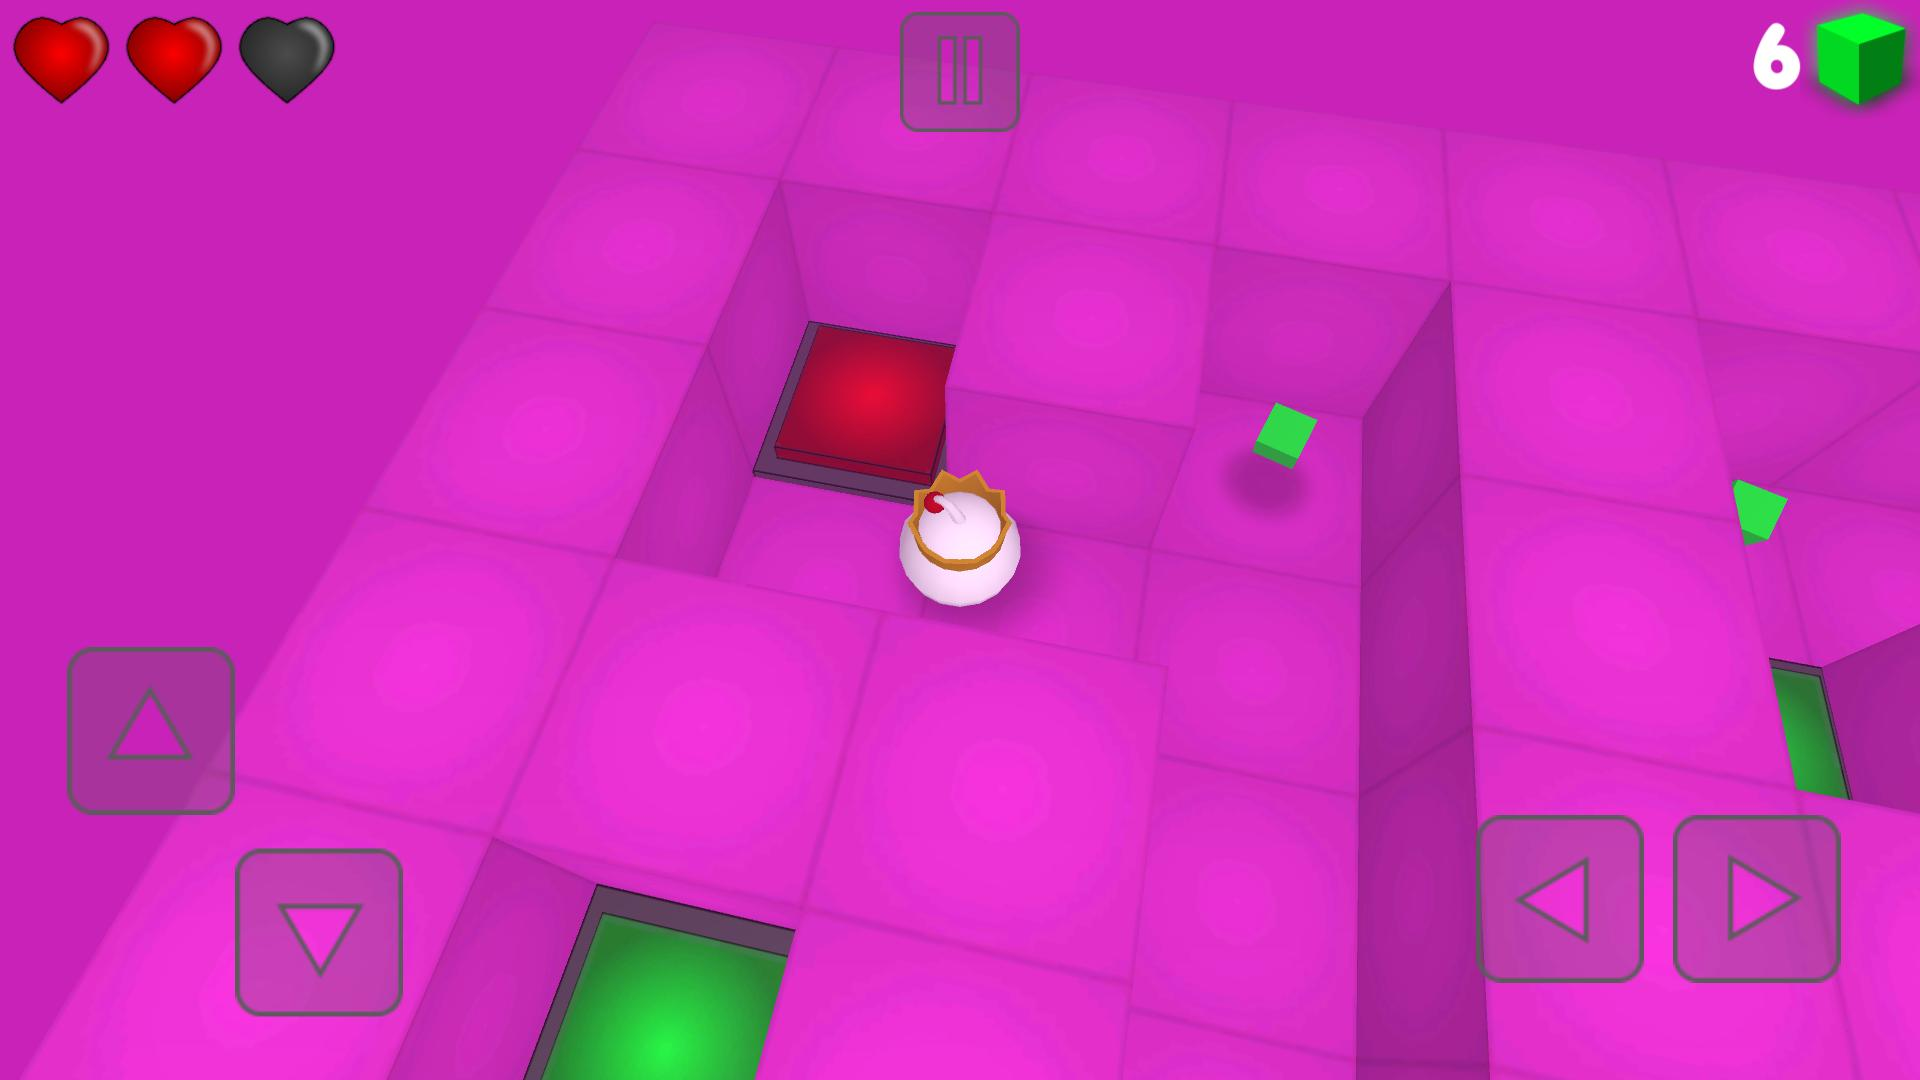 Twinky and Emerald maze for Android   APK Download 1920x1080